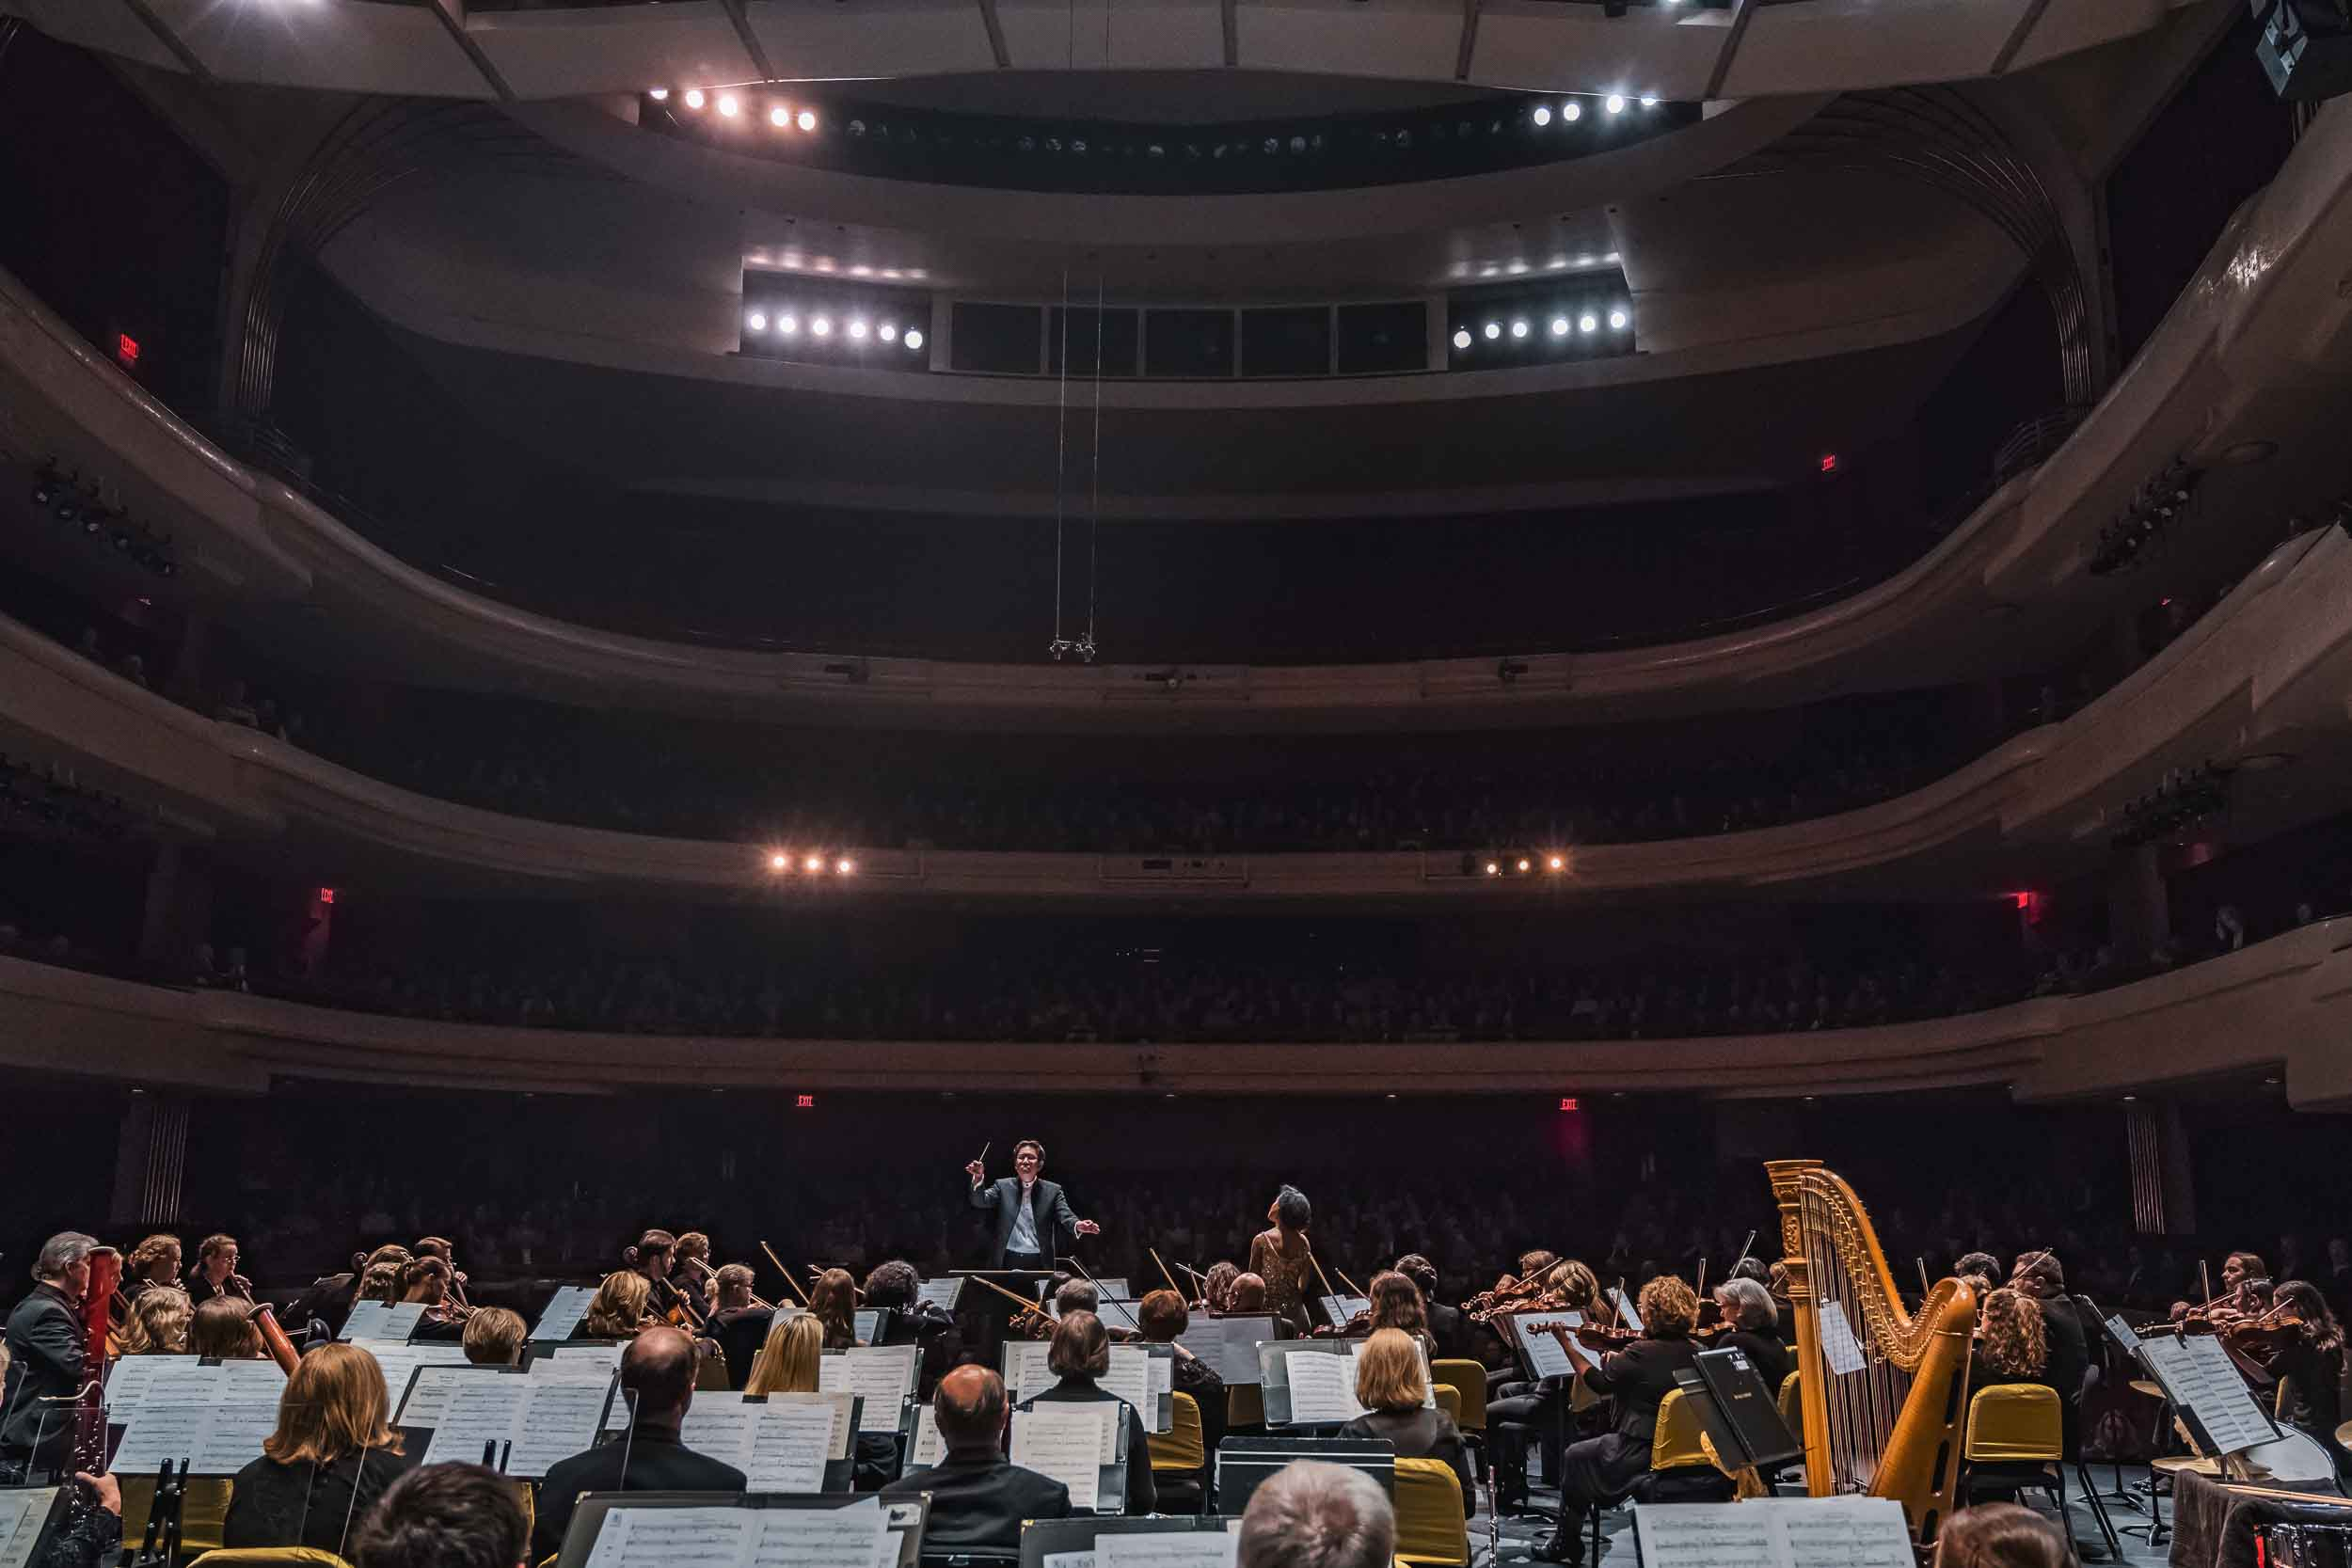 fox-valley-symphony-orchestra-business-commercial-professional-photographer-graham-images-washatka-wisconsin-appleton-green-bay-006-0606-blog.jpg